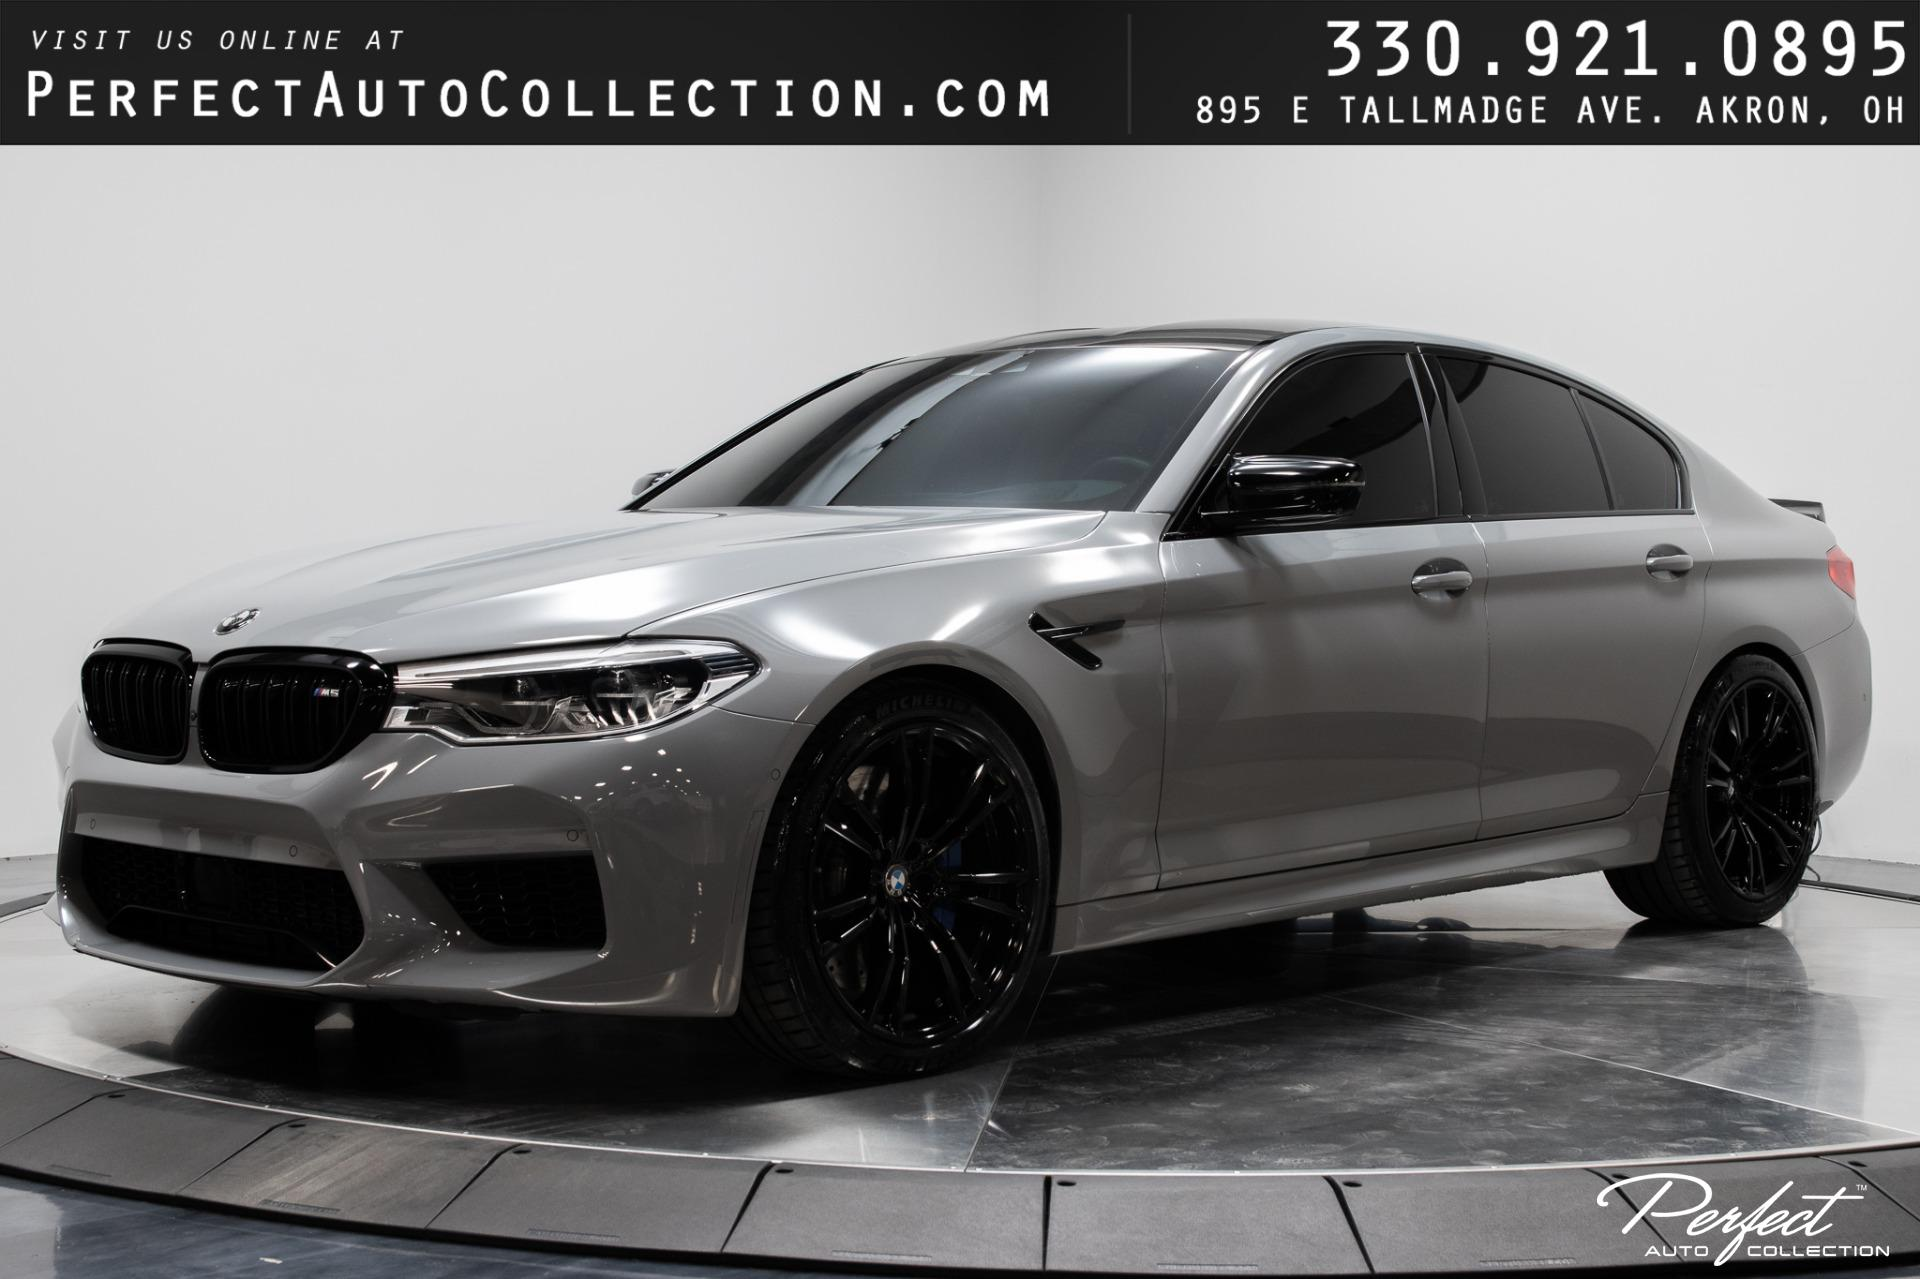 Used 2019 BMW M5 Competition for sale $99,993 at Perfect Auto Collection in Akron OH 44310 1